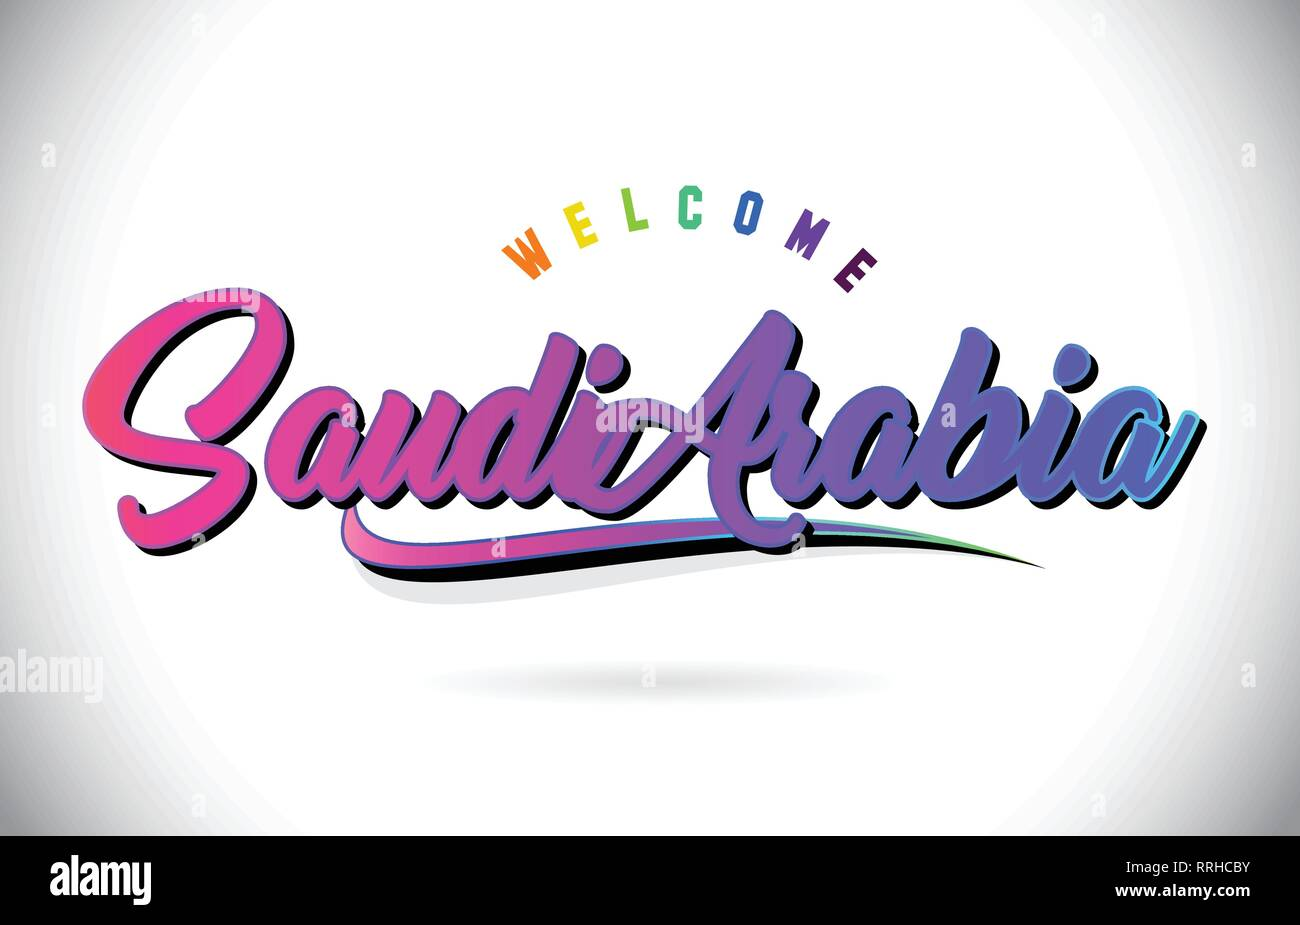 SaudiArabia Welcome To Word Text with Creative Purple Pink Handwritten Font and Swoosh Shape Design Vector Illustration. - Stock Image